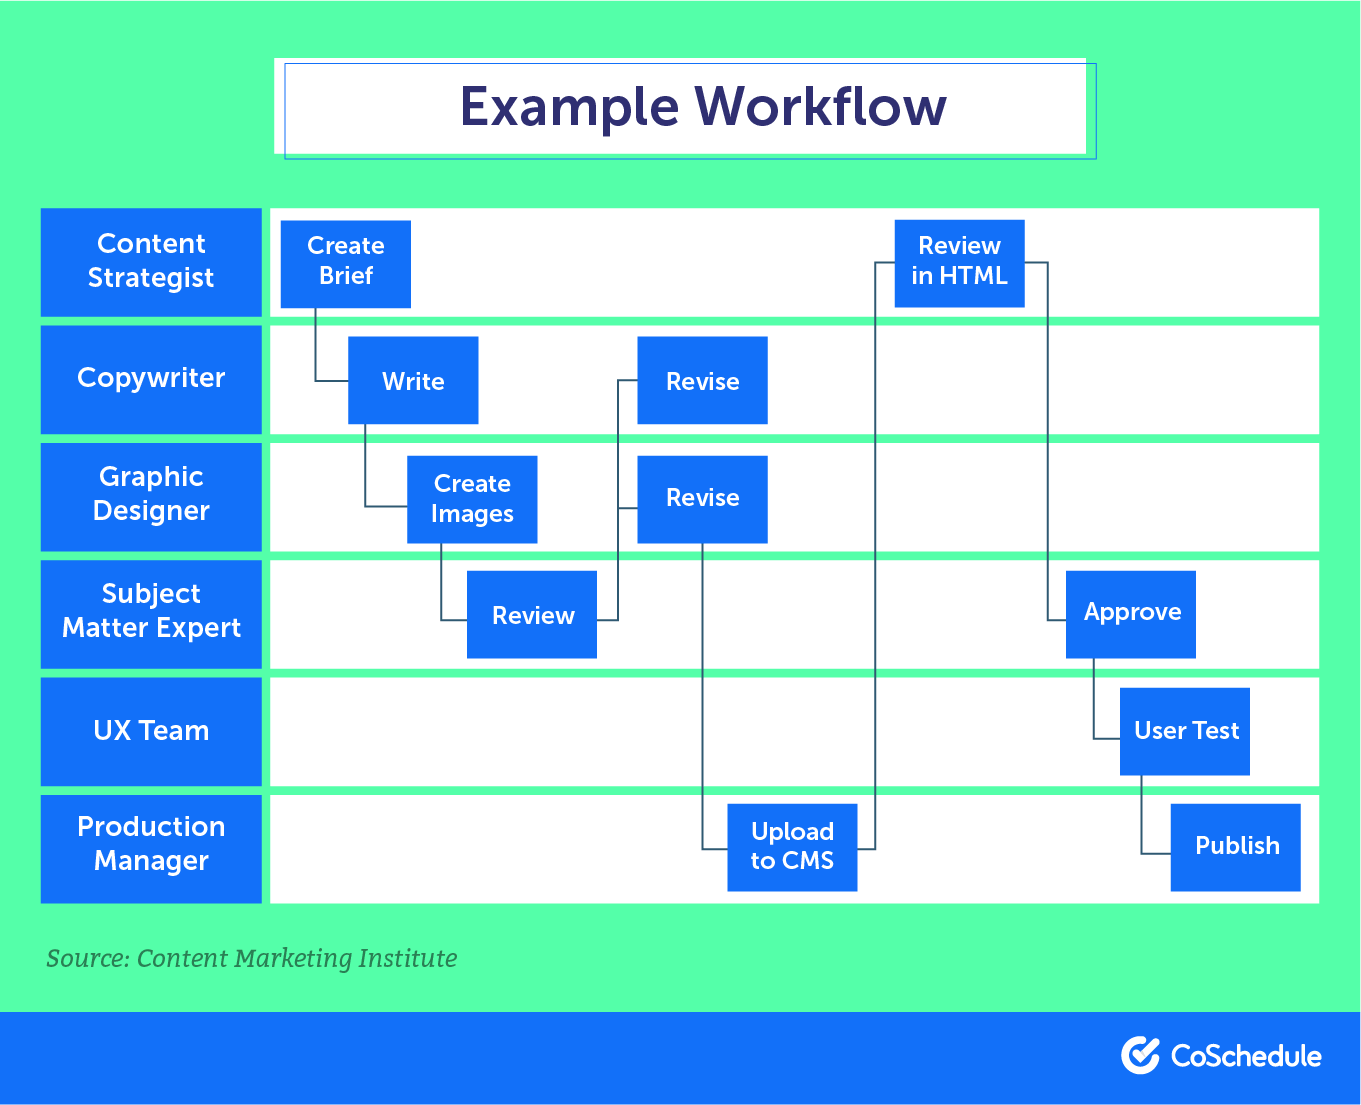 Example of a finished workflow